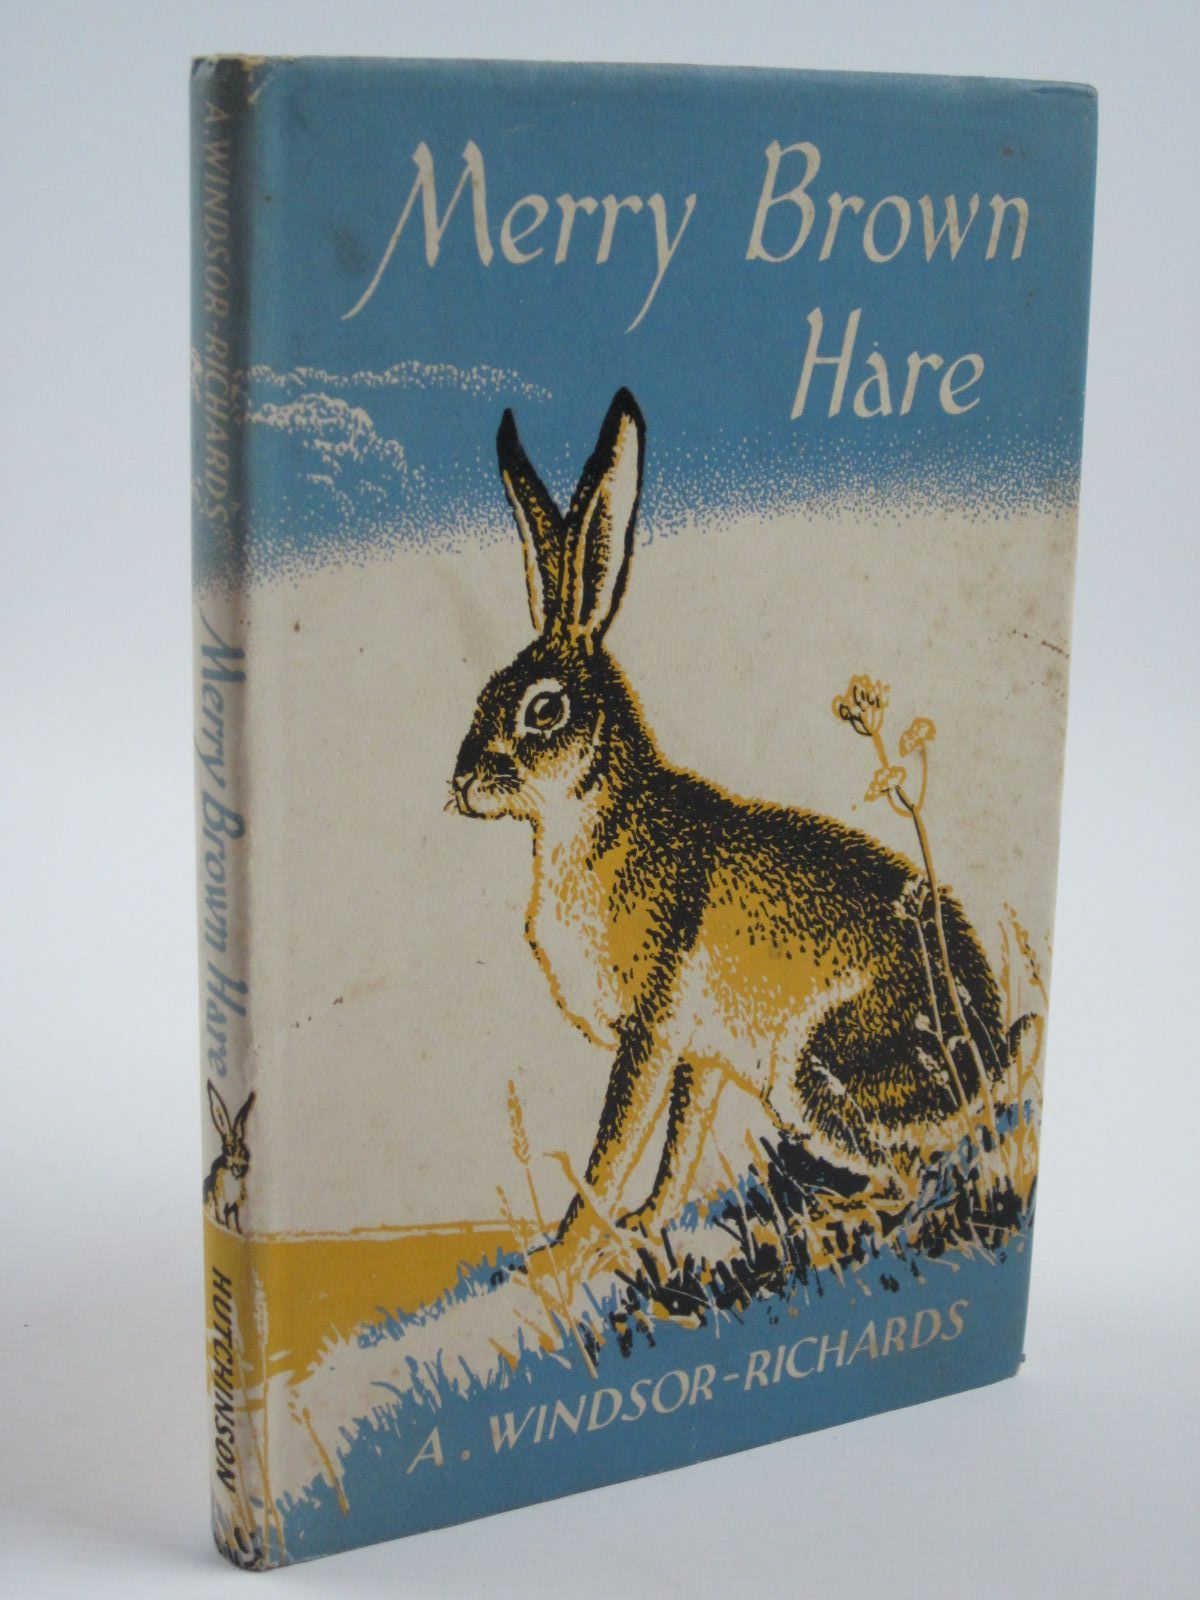 Photo of MERRY BROWN HARE written by Windsor-Richards, A. illustrated by Osmond, Edward published by Hutchinson of London (STOCK CODE: 1310202)  for sale by Stella & Rose's Books